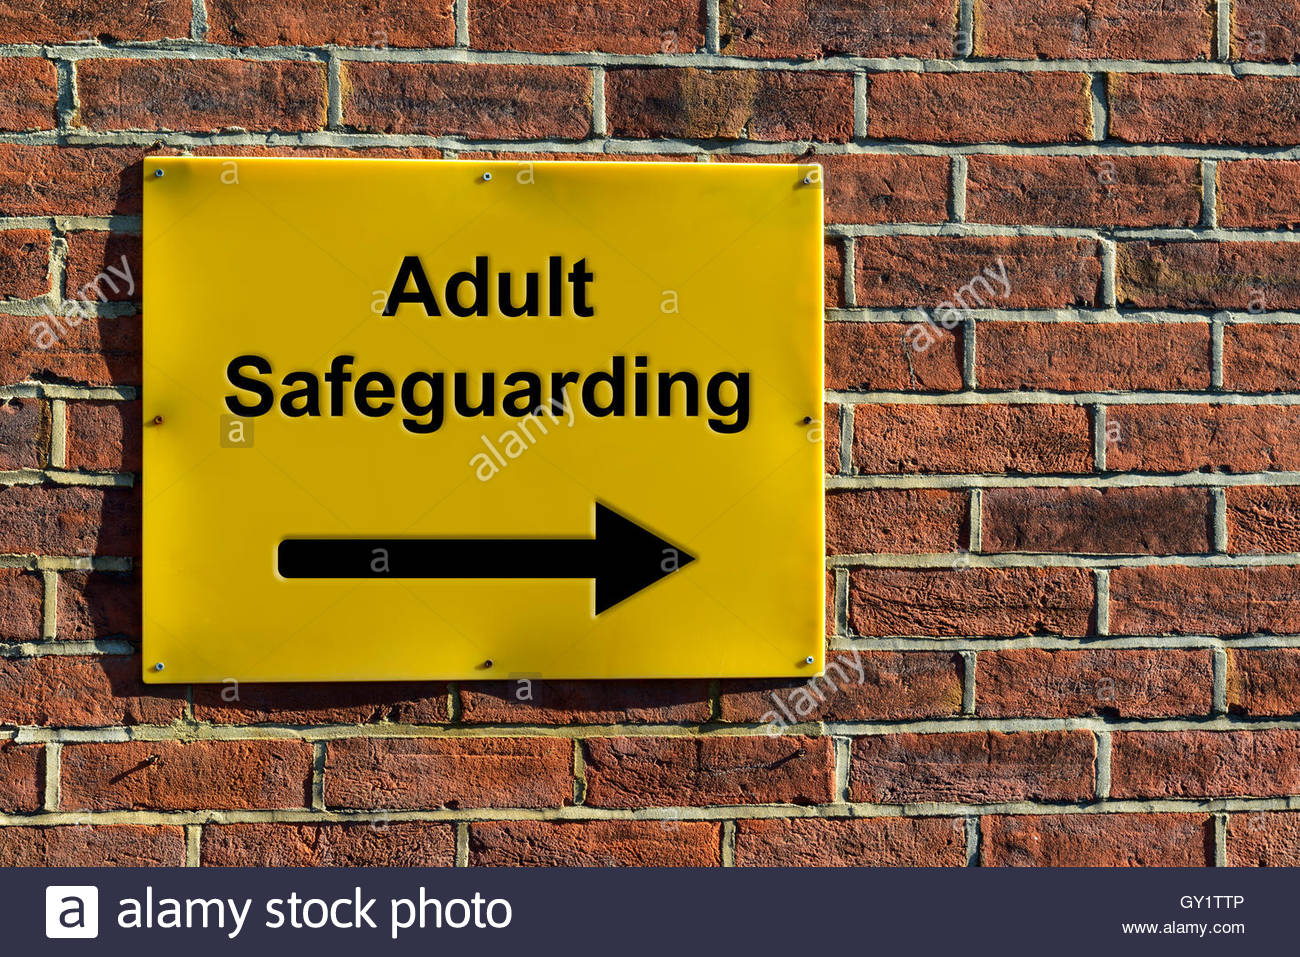 Adult Safeguarding, NHS wall mounted direction sign. - Stock Image